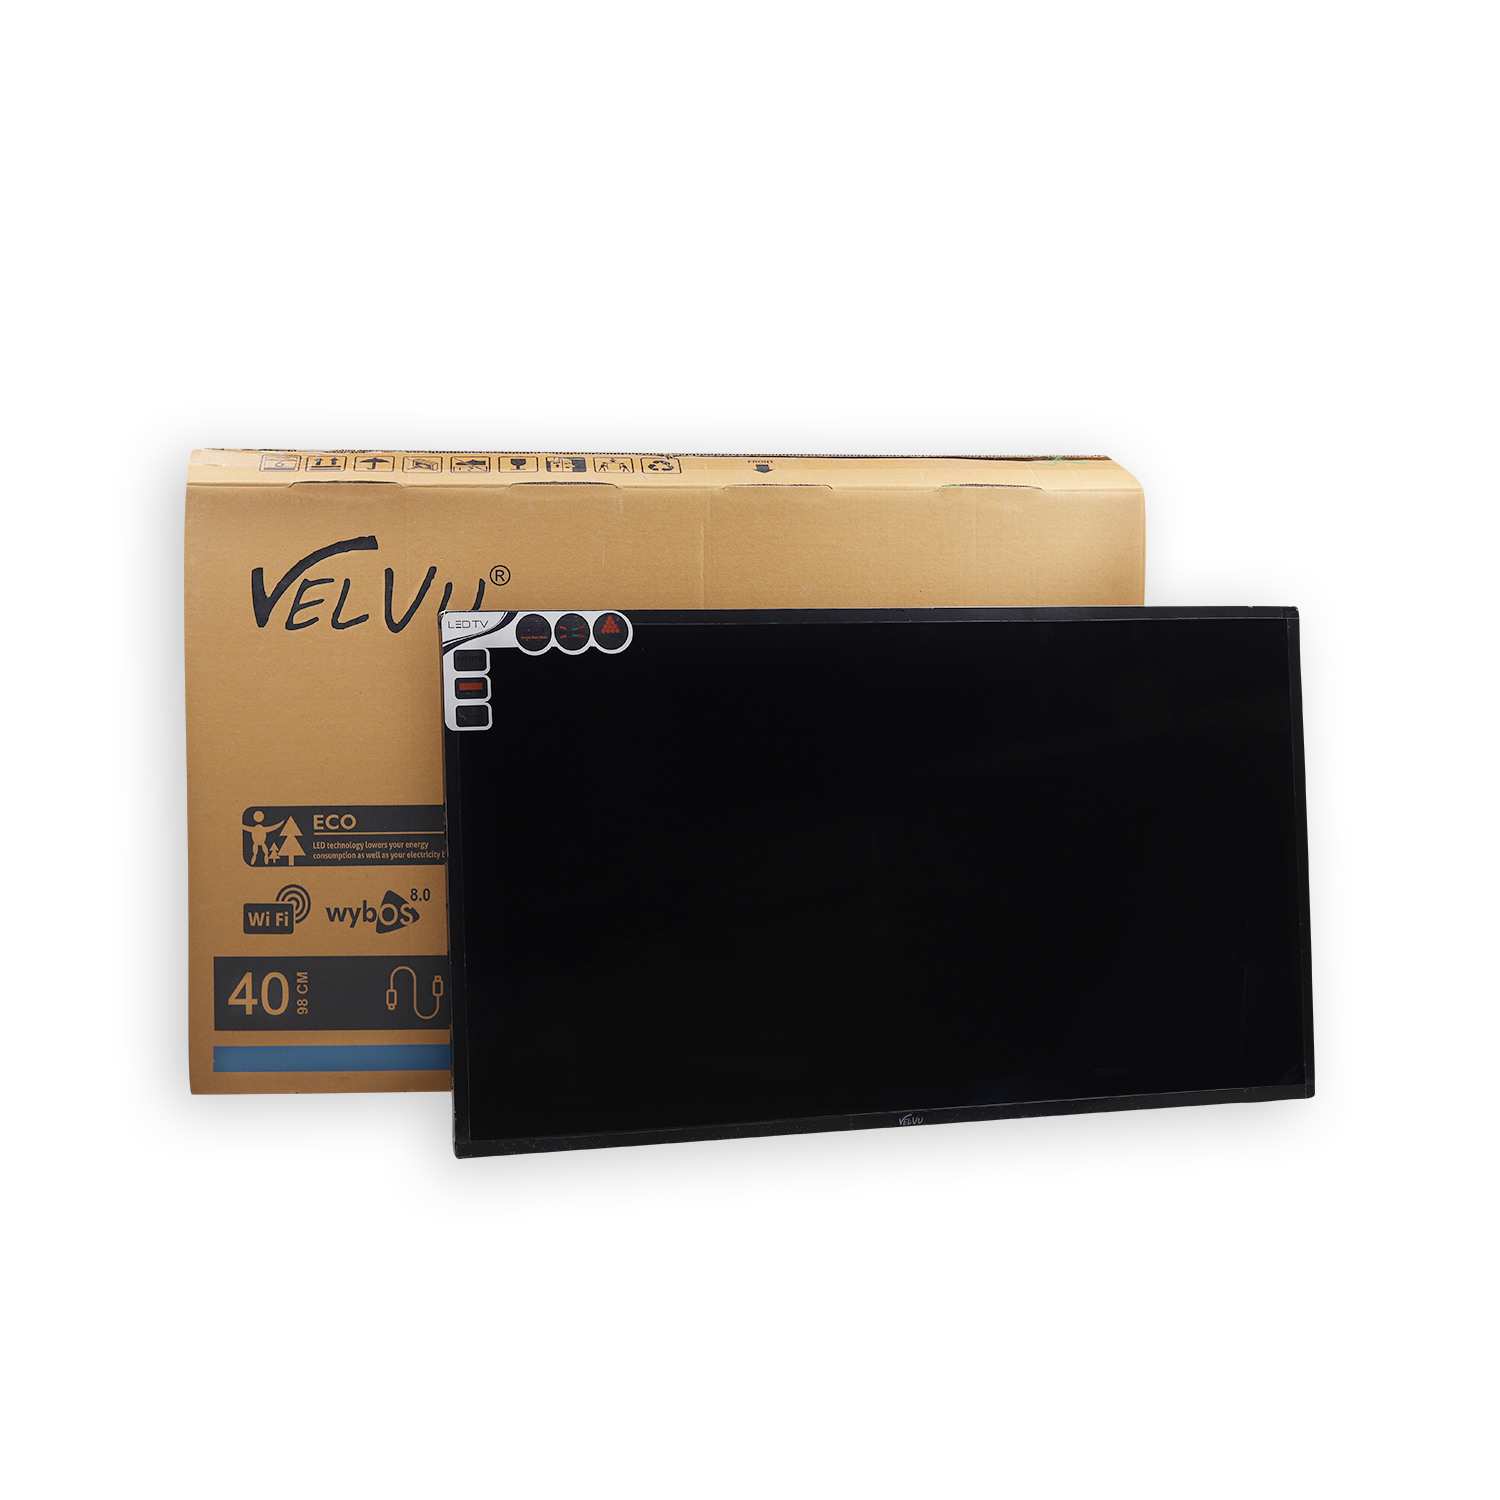 "Velvu 40"" LED Smart 1GB STVL40SL-1GB"